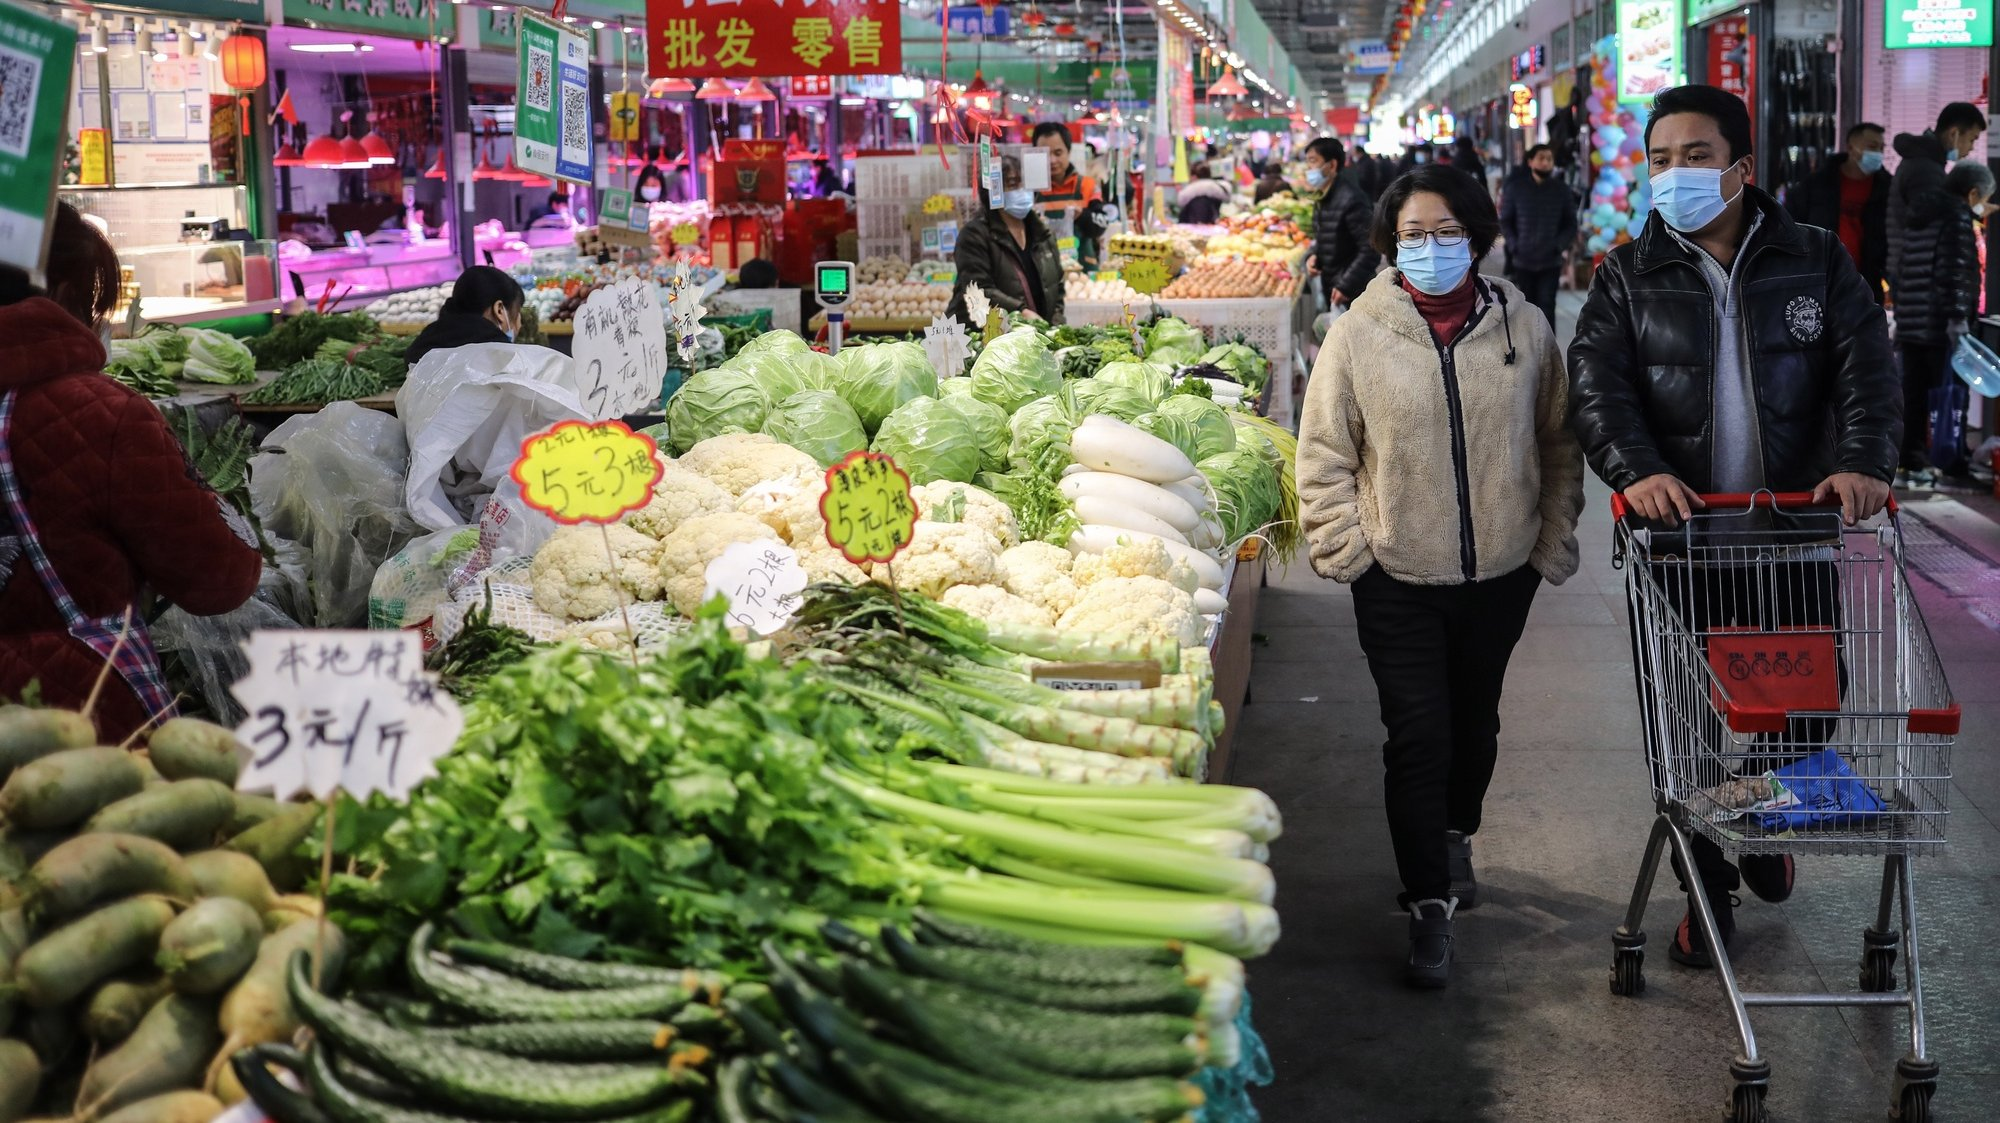 epa08871803 Consumers walk past vegetable stalls at a stall at a market in Beijing, China, 09 December 2020. According to the National Bureau of Statistics, China's Consumer Price Index (CPI), which is a main gauge of inflation, down 0.5 percent year-on-year in November 2020 that posted the first year-on-year drop in 11 years.  EPA/WU HONG